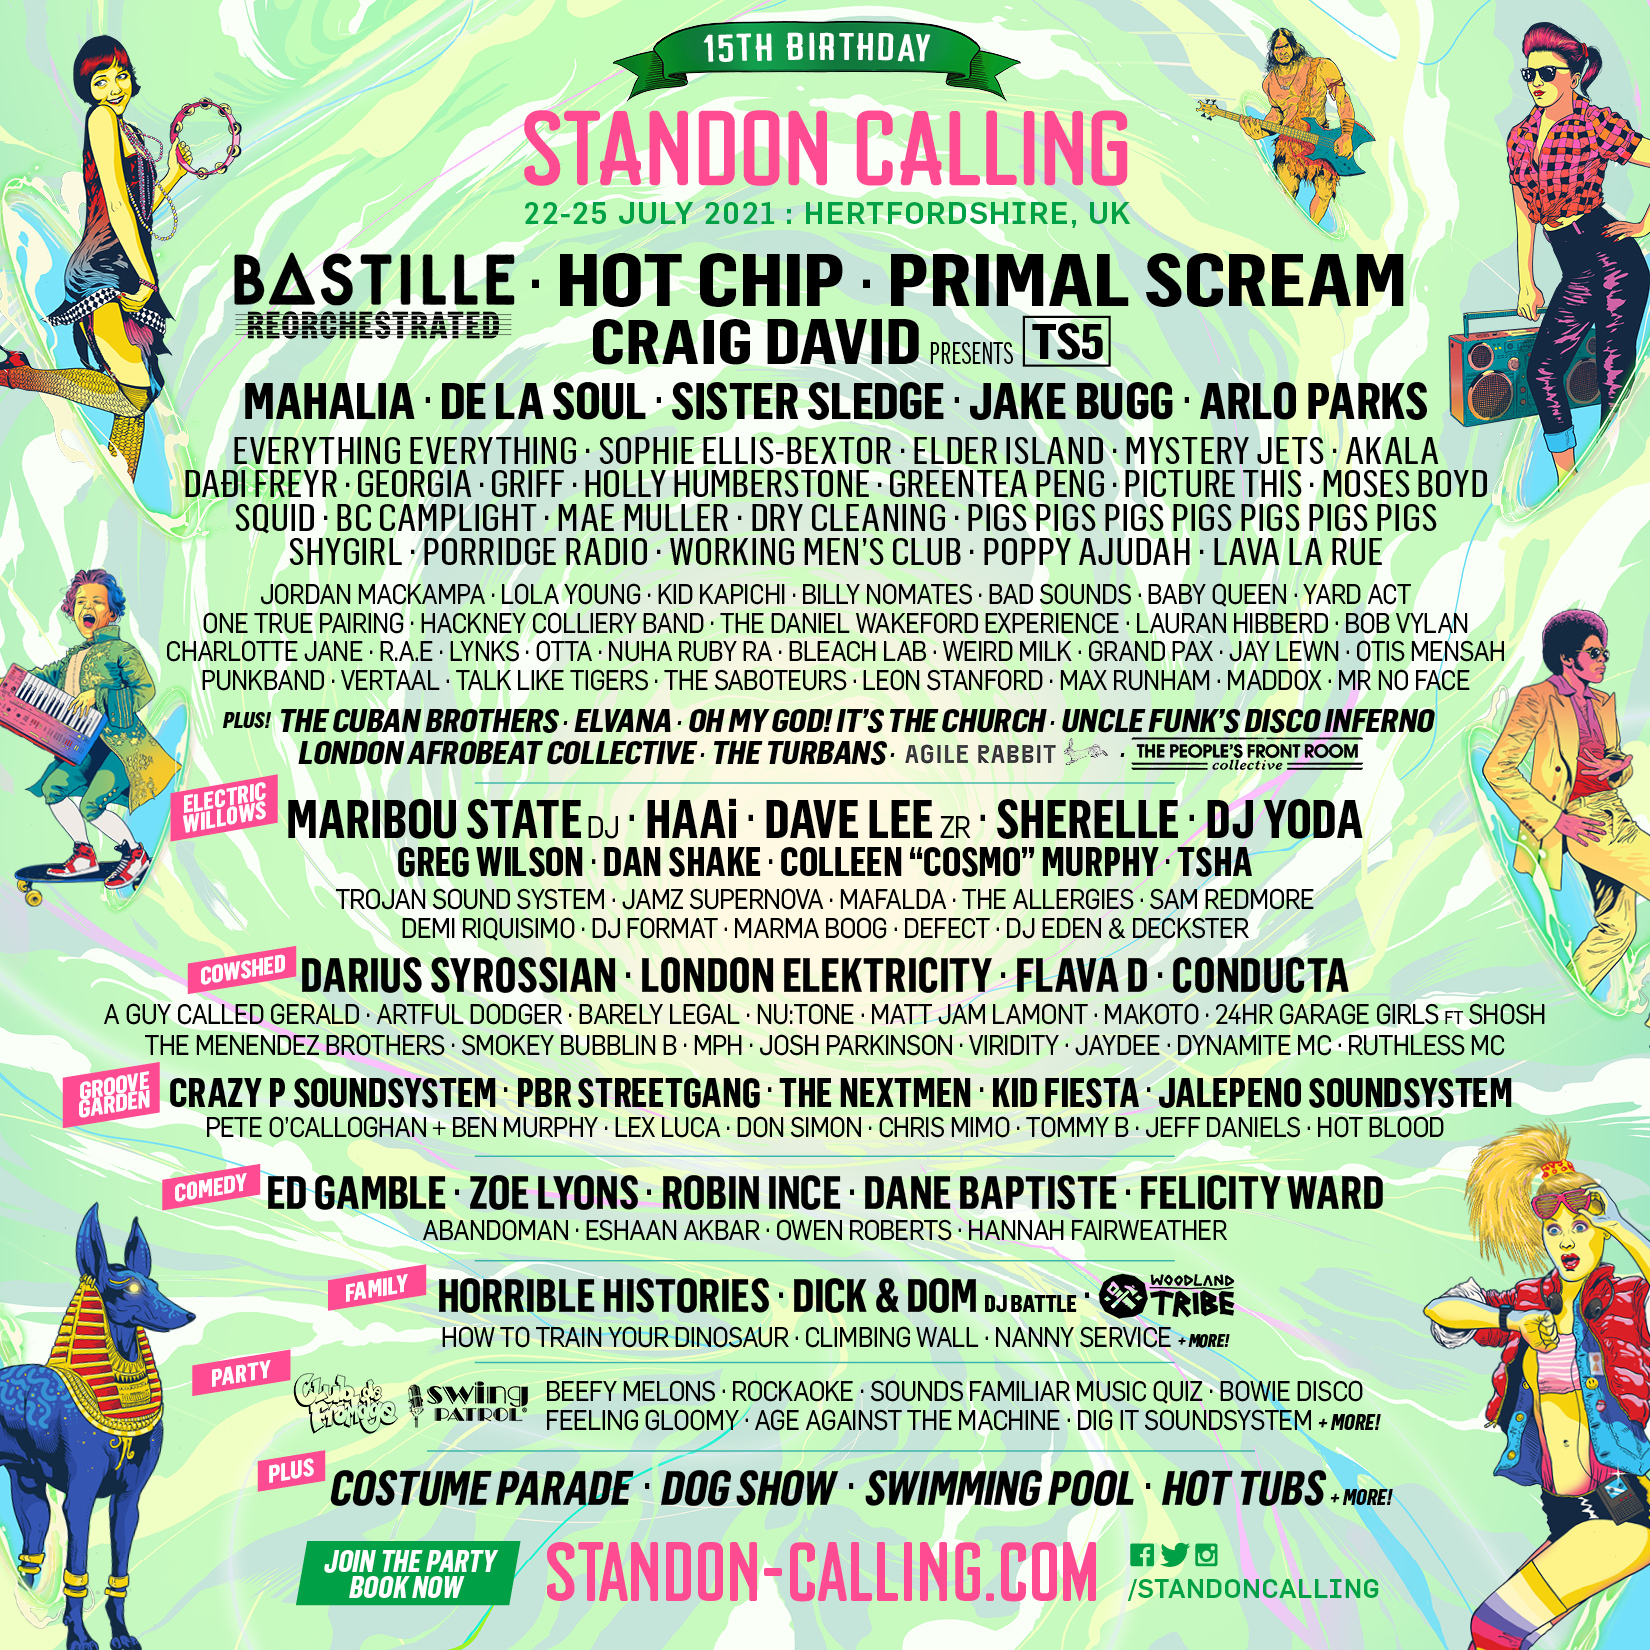 Standon Calling: Bastille ReOrchestrated, Arlo Parks, Robin Ince Just Announced 2